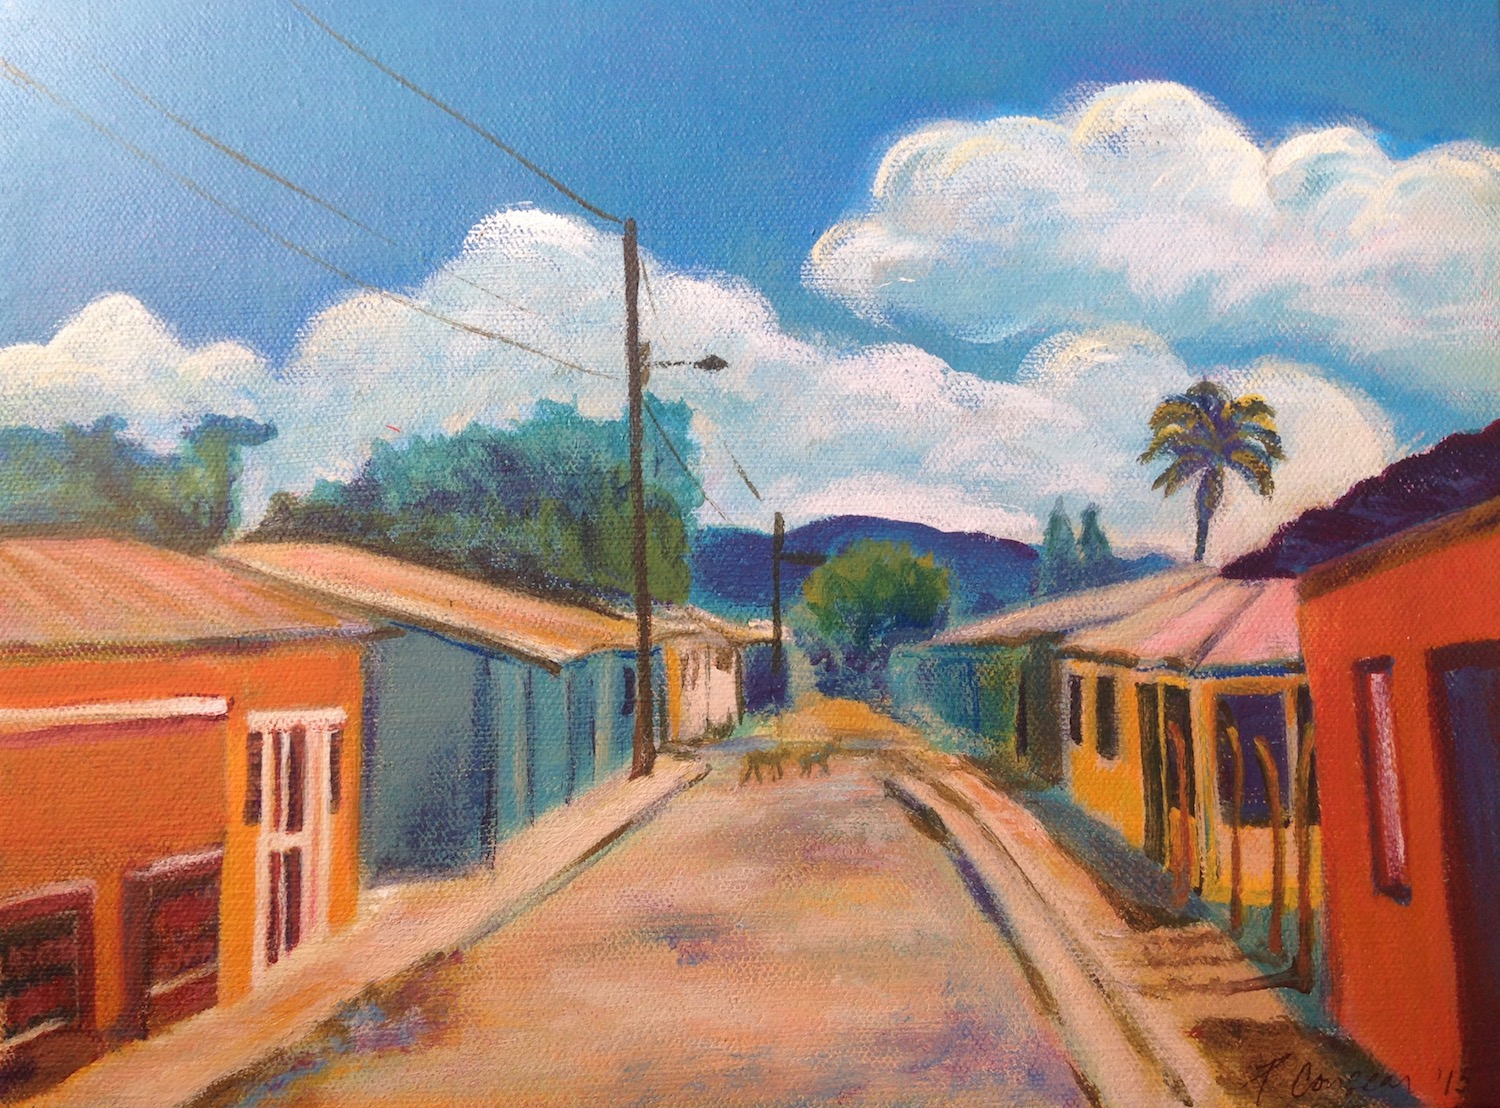 Here's the exact street where we're headed, in Batey Isabela, Republica Dominicana. (Painting by Pam, commissioned by Natalie,based on one of her photos)